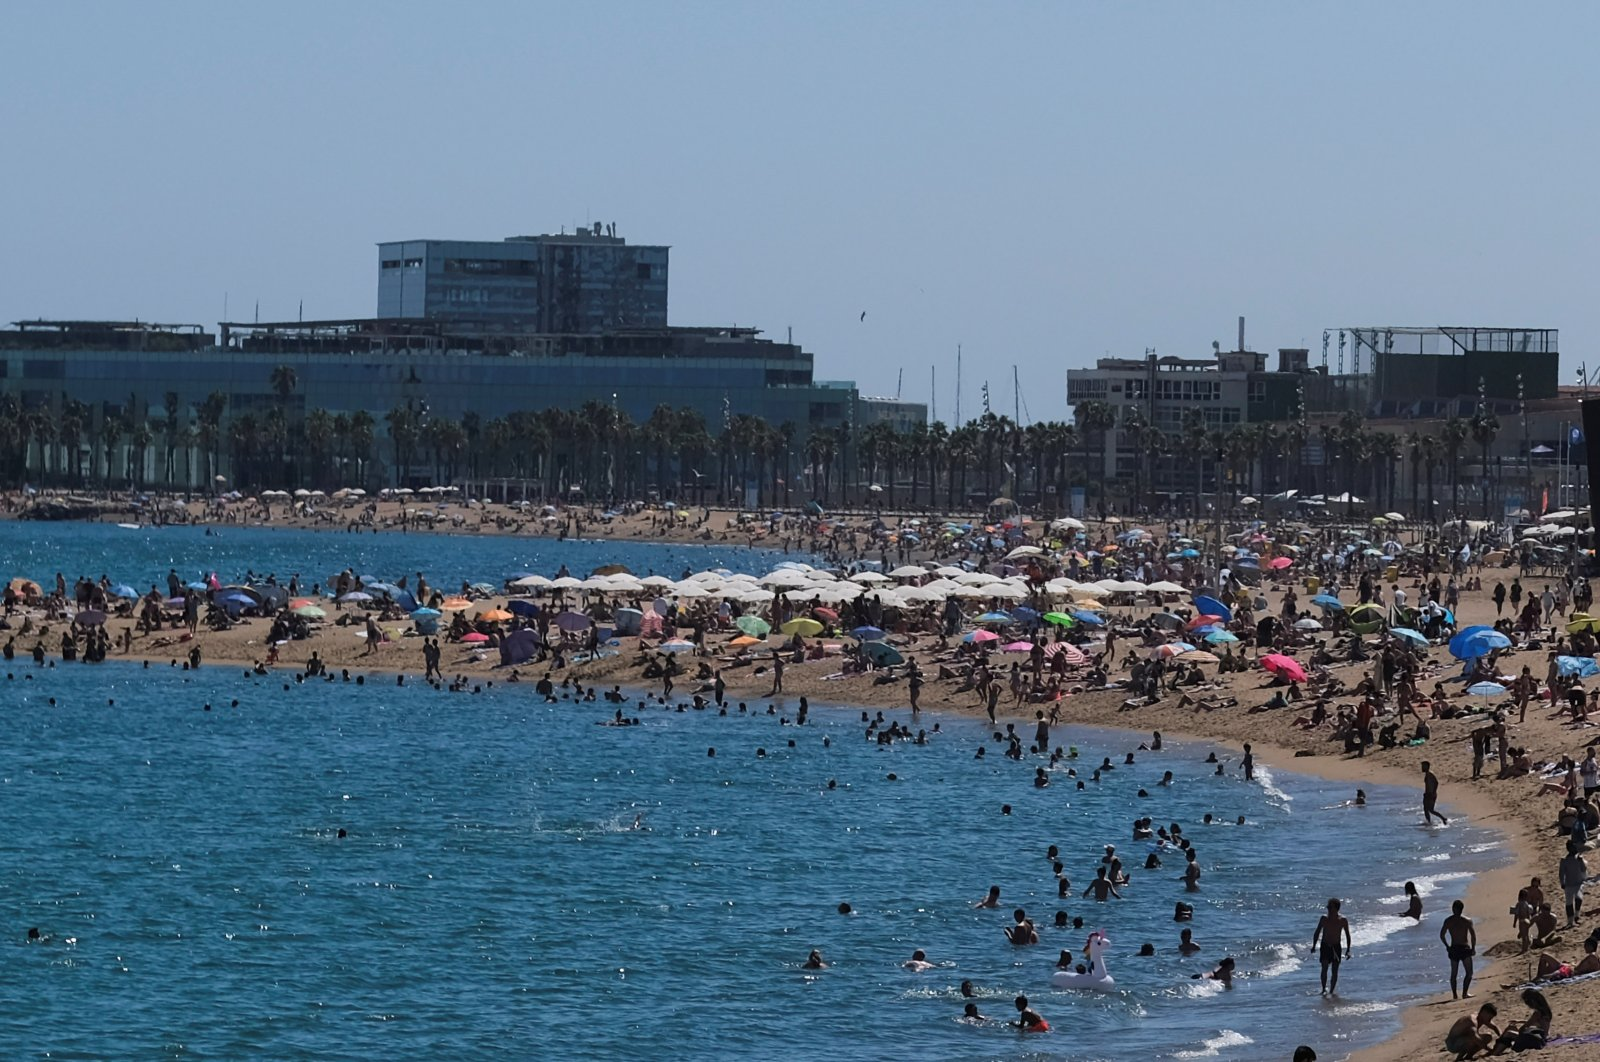 People enjoy the sunny weather at the Barceloneta beach, after Catalonia's regional authorities and the city council announced restrictions to contain the spread of the coronavirus disease (COVID-19) in Barcelona, Spain, July 19, 2020. (REUTERS Photo)